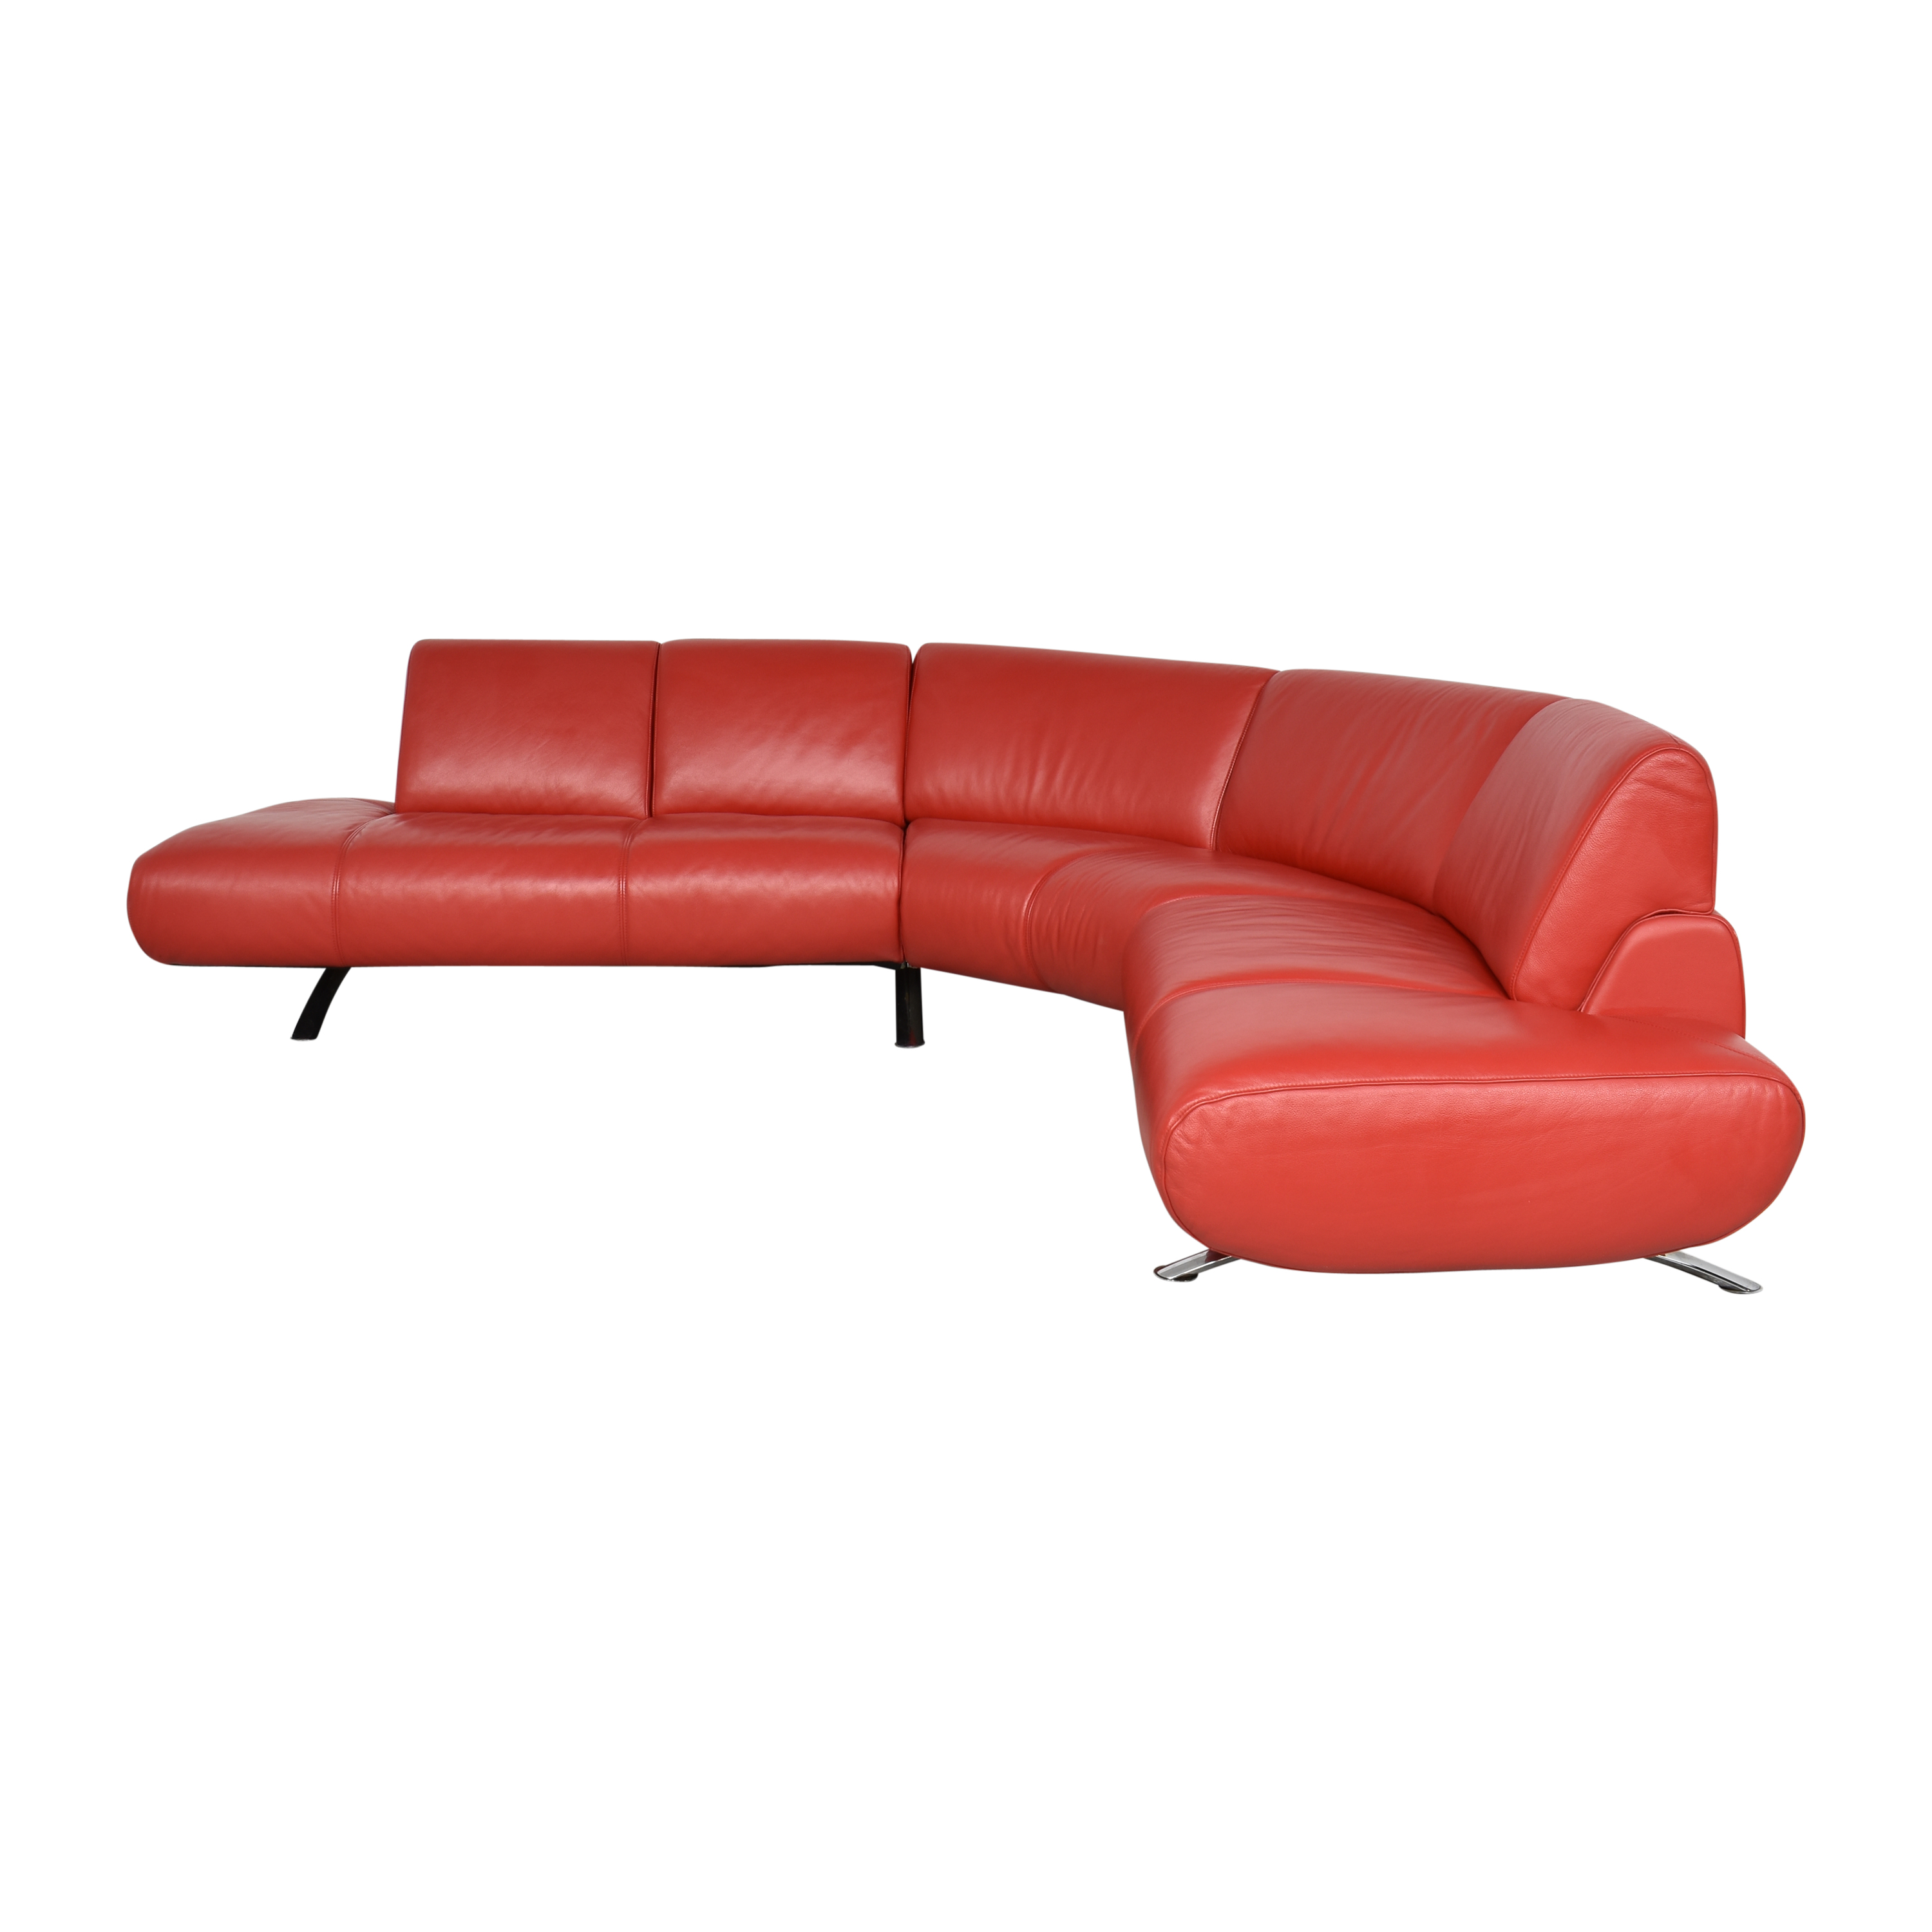 W. Schillig W. Schillig L Shaped Sectional ct